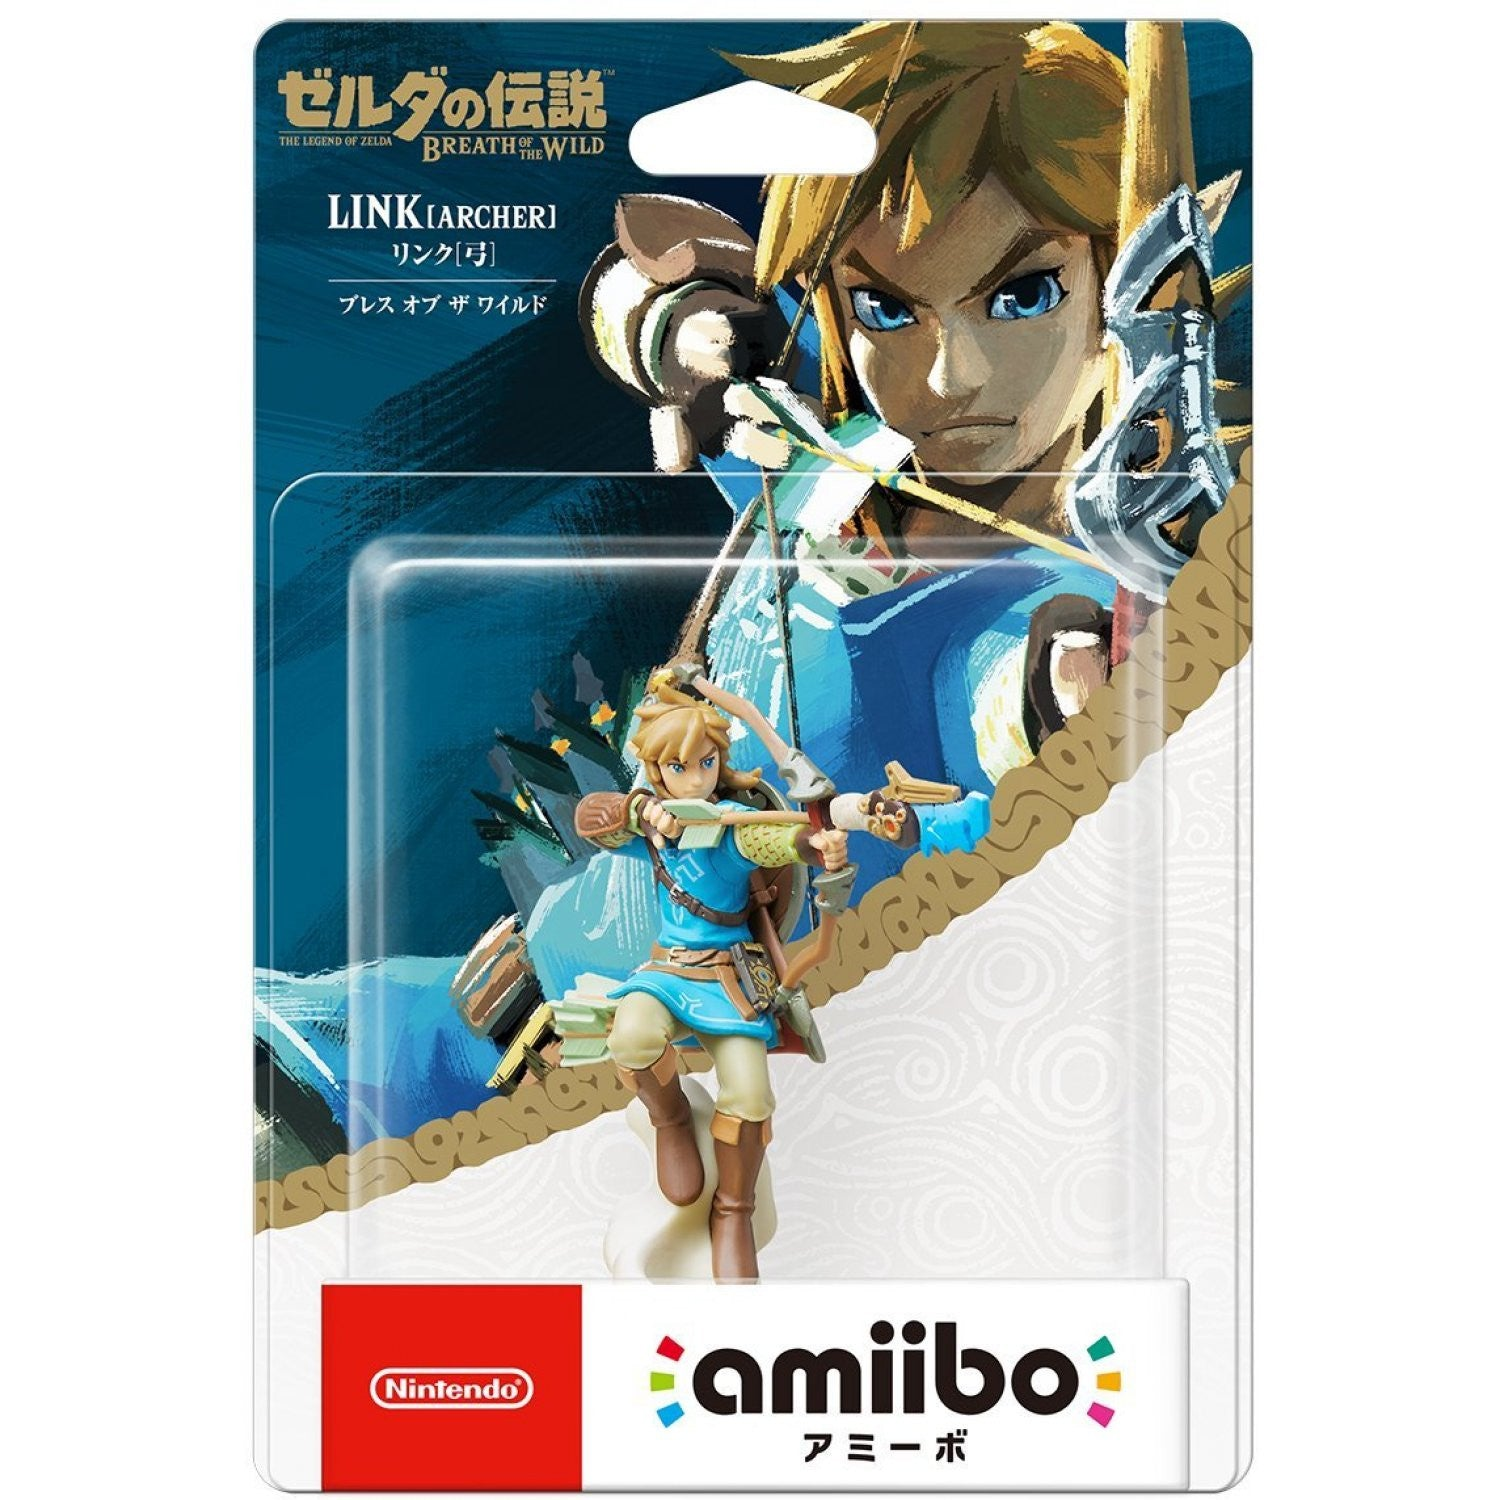 Amiibo The Legend of Zelda: Breath of the Wild Series Figure (Link: Archer)